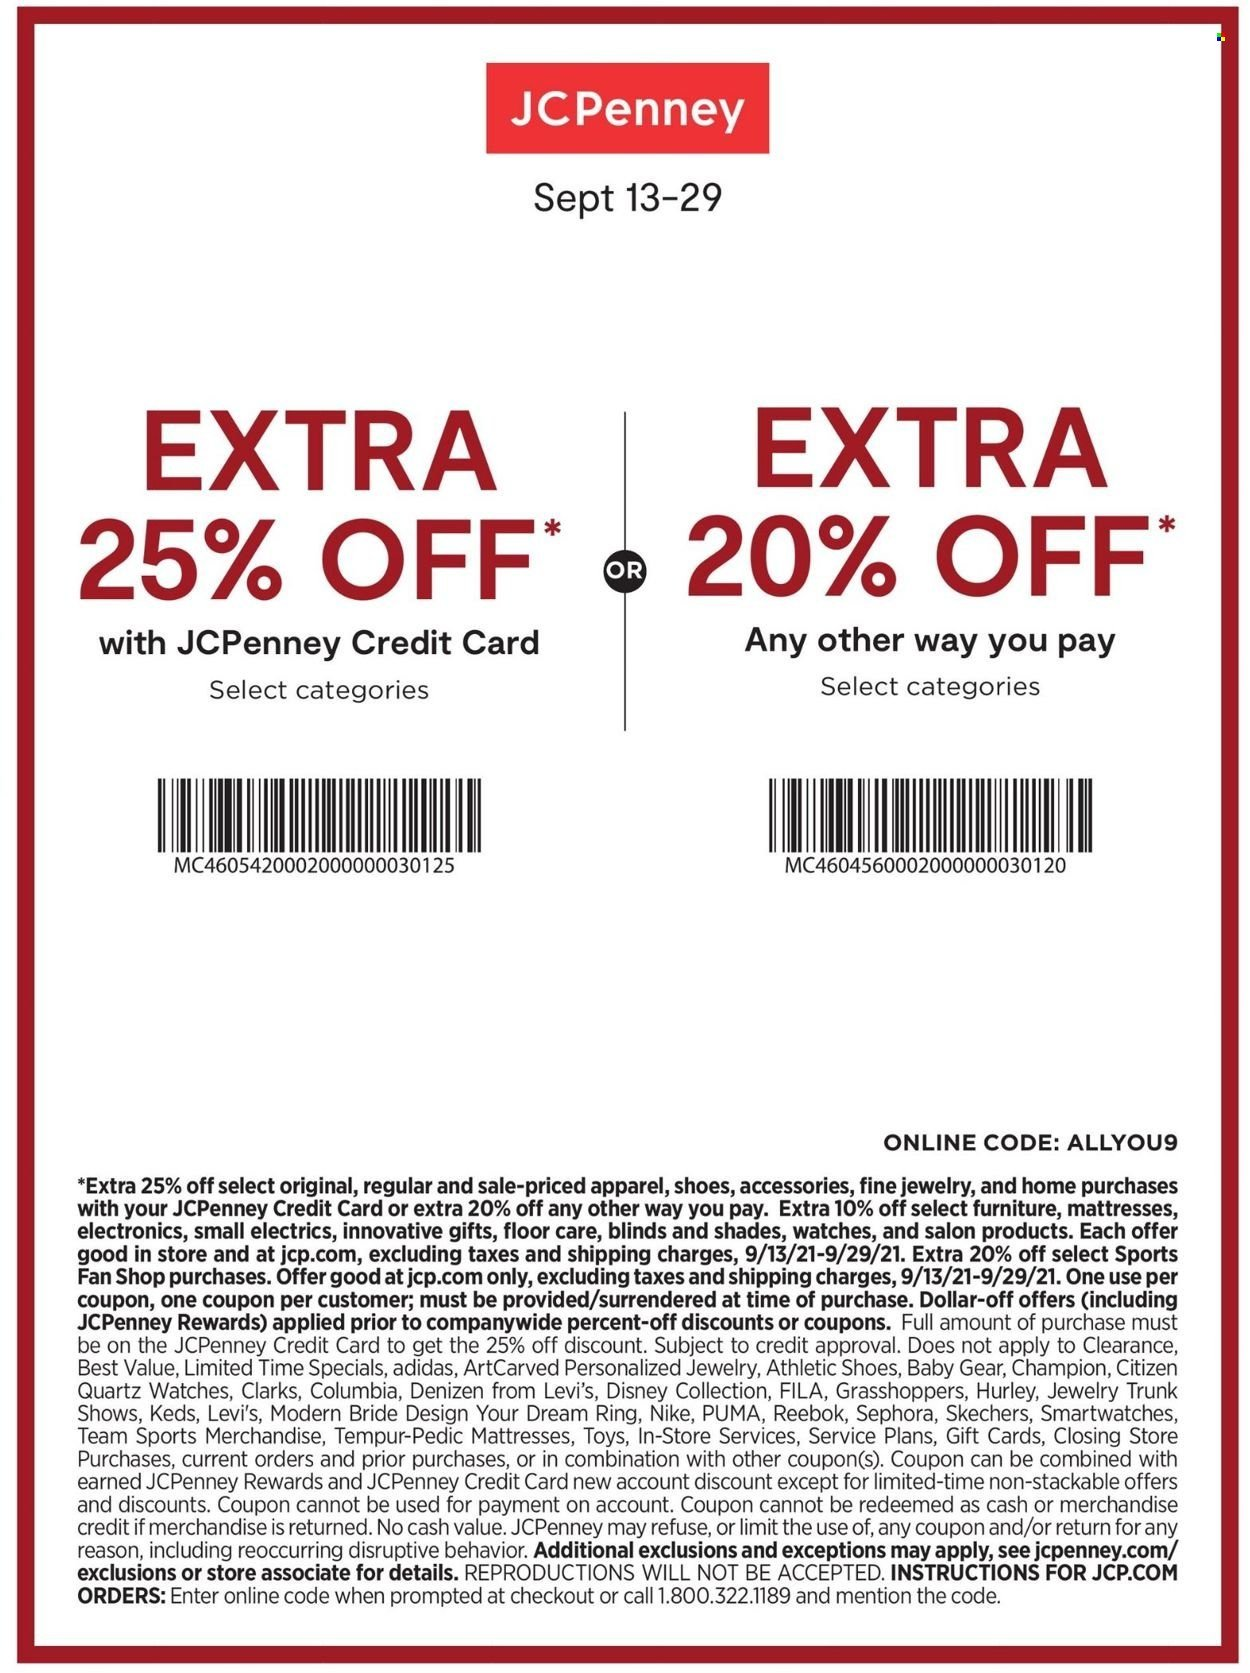 JCPenney Fall Fashion Event from september 13 to 29 2021 - Page 2